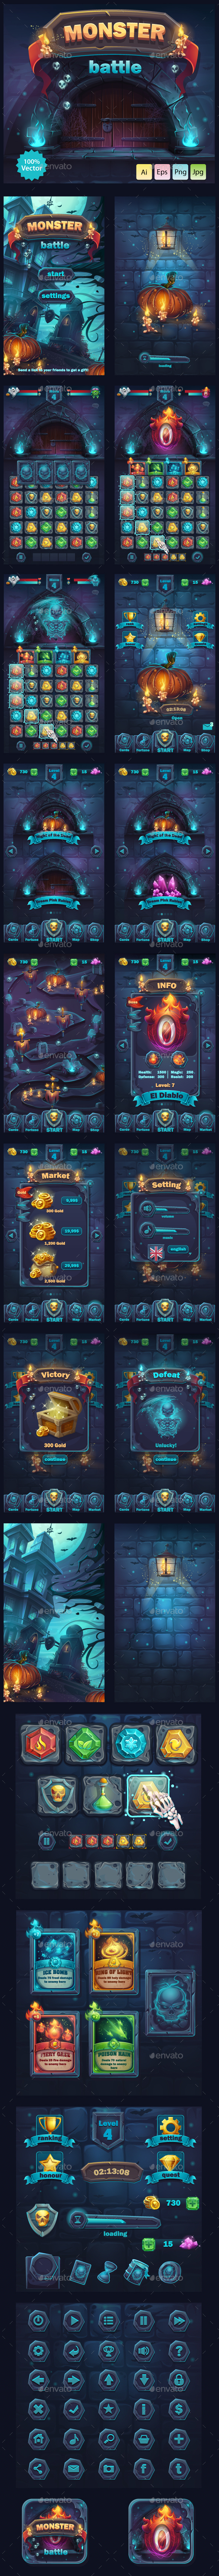 Monster Battle GUI - User Interfaces Game Assets